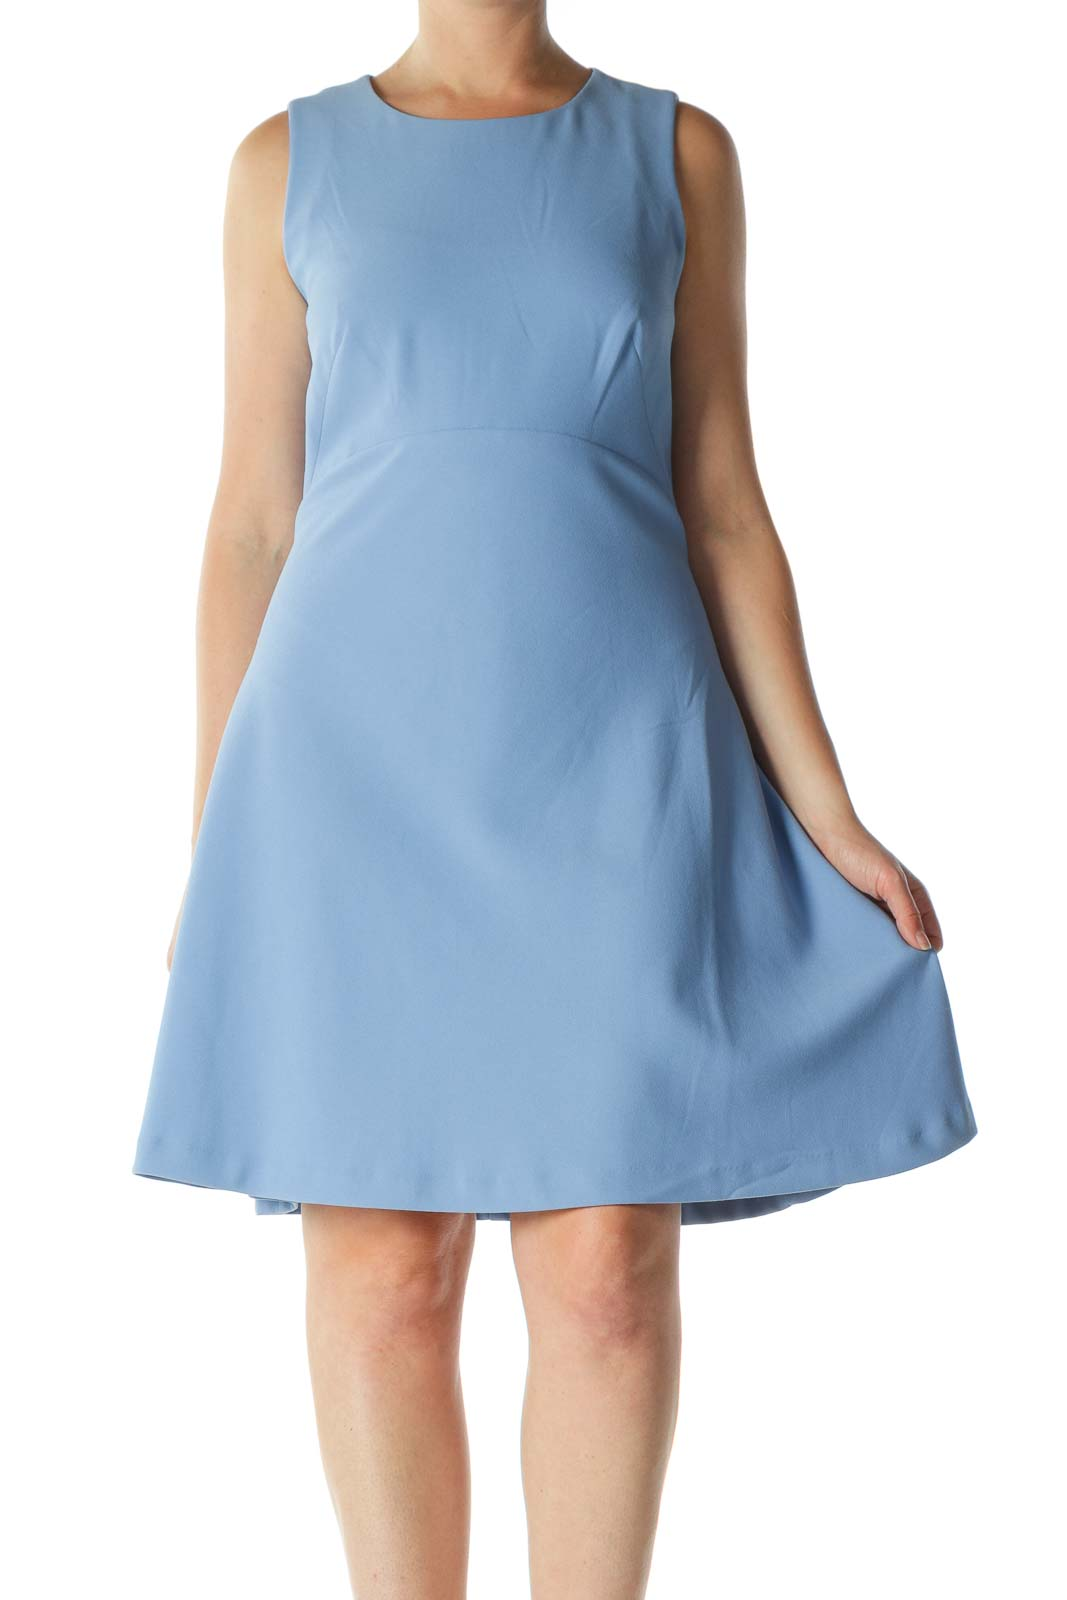 Blue Sleeveless Round-Neck Work A-Line Dress